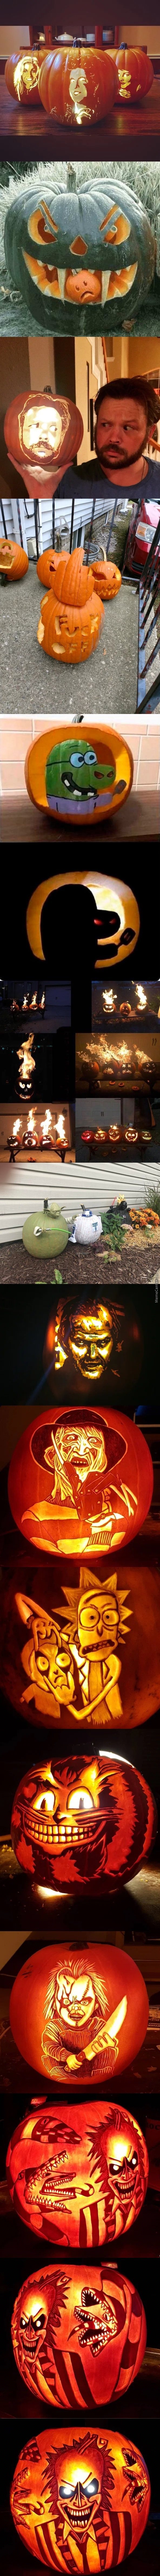 The 13 Days Of Halloween Redux: Day 2 Pumpkin Perfection